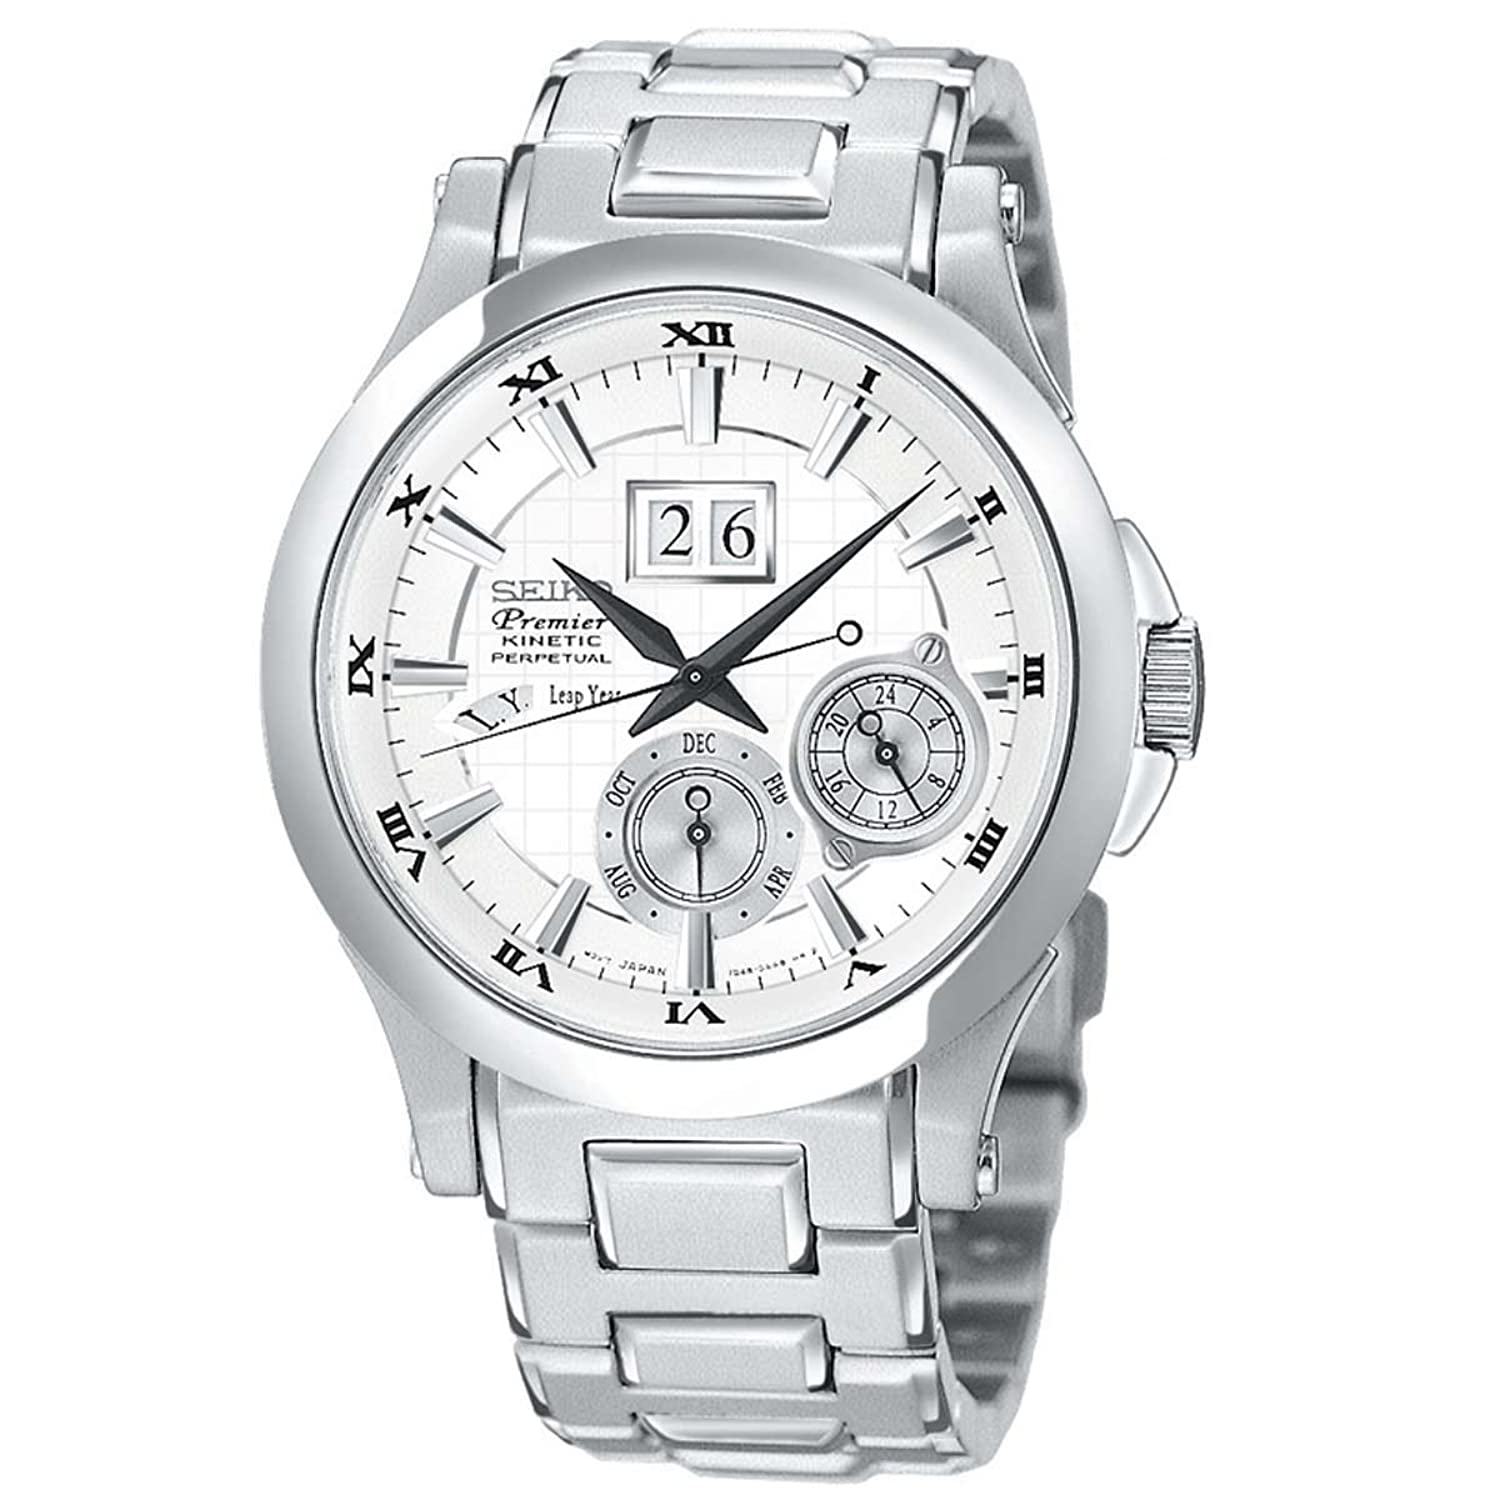 Amazon.com: Seiko Premier Kinetic Perpetual Calendar (Men's Watch): Seiko:  Watches